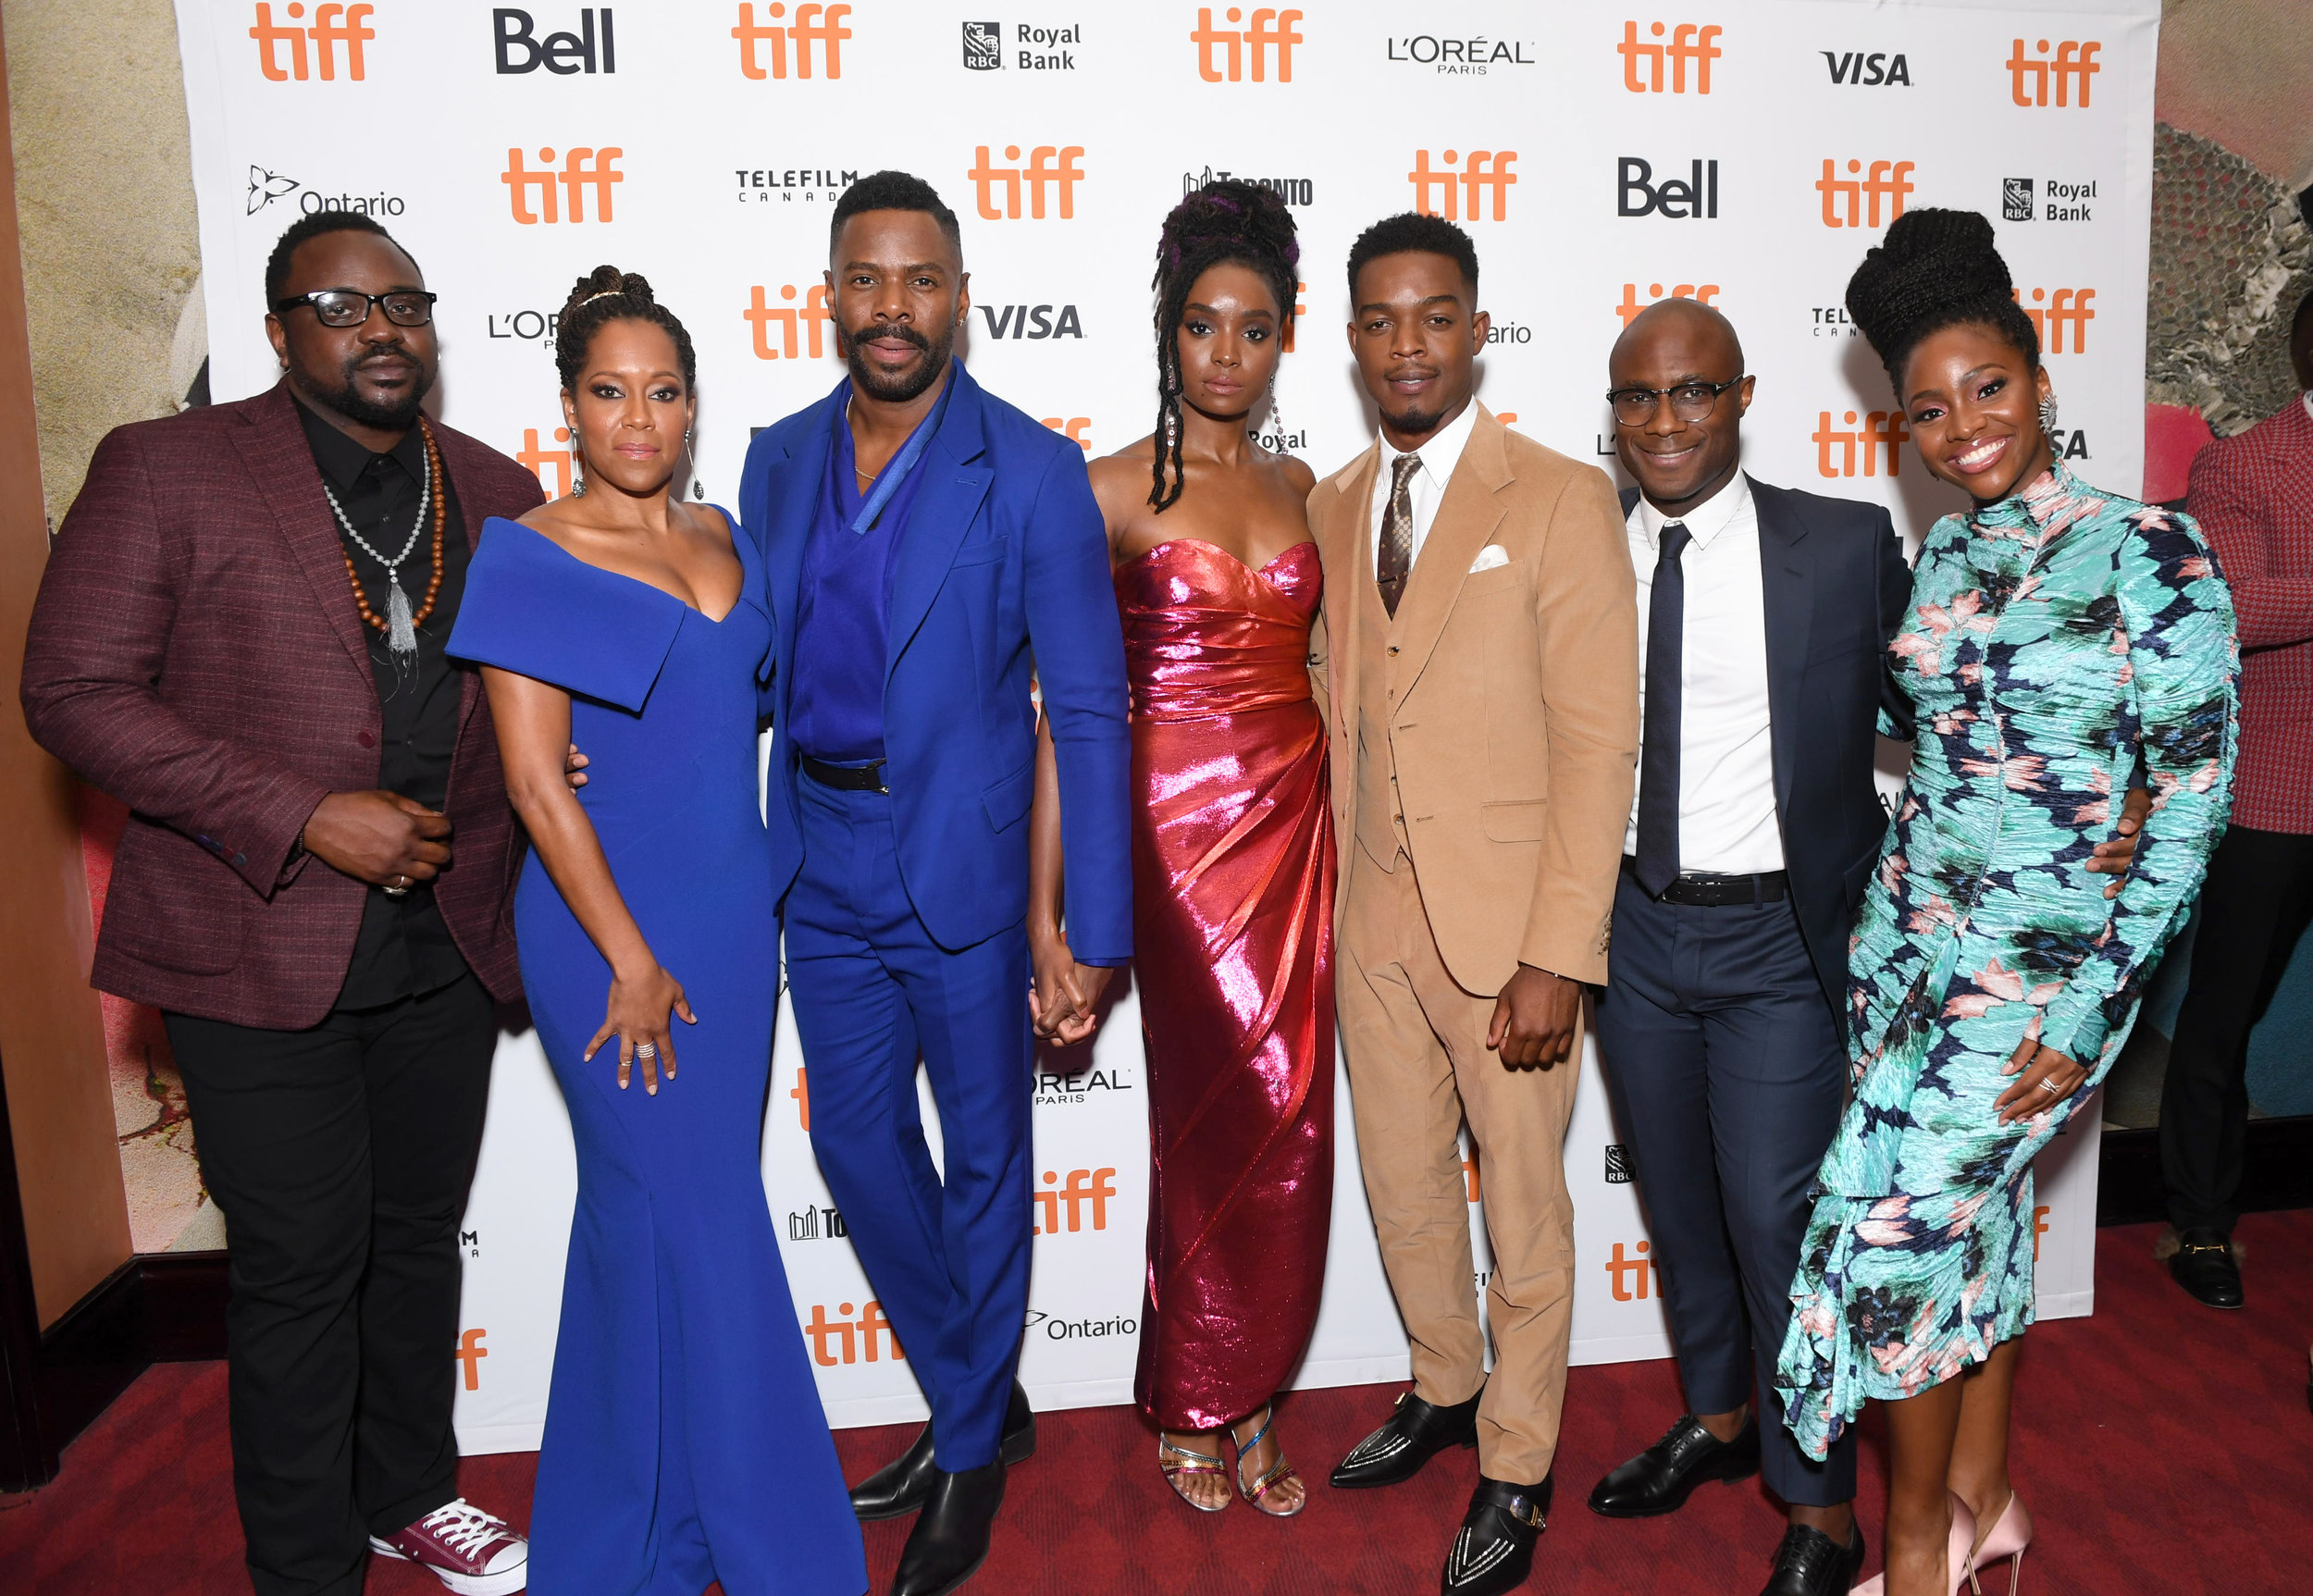 """13. THE CAST OF """"IF BEALE STREET COULD TALK"""" (L-R): Brian Tyree Henry, Regina King, Colman Domingo, KiKi Layne, Stephan James, Teyonah Paris Also pictured: Writer/director Barry Jenkins Not pictured: Aunjanue Ellis, Michael Beach    Adapted from James Baldwin's 1973 novel, a young African-American couple face an uncertain future, expecting their first child, while the father is incarcerated for a crime he never committed.    (writer/director Barry Jenkins):  """"This movie was definitely harder than  Moonlight . For 8,000 different reasons, but the narrative is slippery, there are way more characters. If there are five words spoken in  Moonlight , there are 500 words spoken in  Beale Street . There are all these different muscles that I haven't had to work out in the past that I had to work out in this film.  The intimacy between the two young persons, and for me that all came down to two actors who would connect in a certain way. I think when you think of chemistry, you think, ' Oh, those two actors just want to tear each other's clothes off .' And that's not what I'm speaking of when I speak of chemistry. I'm talking about two people who feel legitimately connected, whose viewpoints and thoughts dovetail, and I thought that about KiKi Layne (""""Tish"""") and Stephan James (""""Fonny"""").  If it's all anger, all the time, then to me that's dehumanizing in a certain way. There is a child at the end of this journey, and I did not want to have the circumstances of what befalls Fonny to completely consume him. When Regina [King's character, Sharon, Tish's mother] goes to Puerto Rico [to confront Victoria about her accusation against Fonny], if I were making this movie from a place of anger, the scene between the two of them would be very problematic. Because if she went to confront that woman out of anger or bitterness … it frightens me to think of how that scene could have played out.  There's a scene very early in the film where there's an act of domestic violence. Right in the m"""